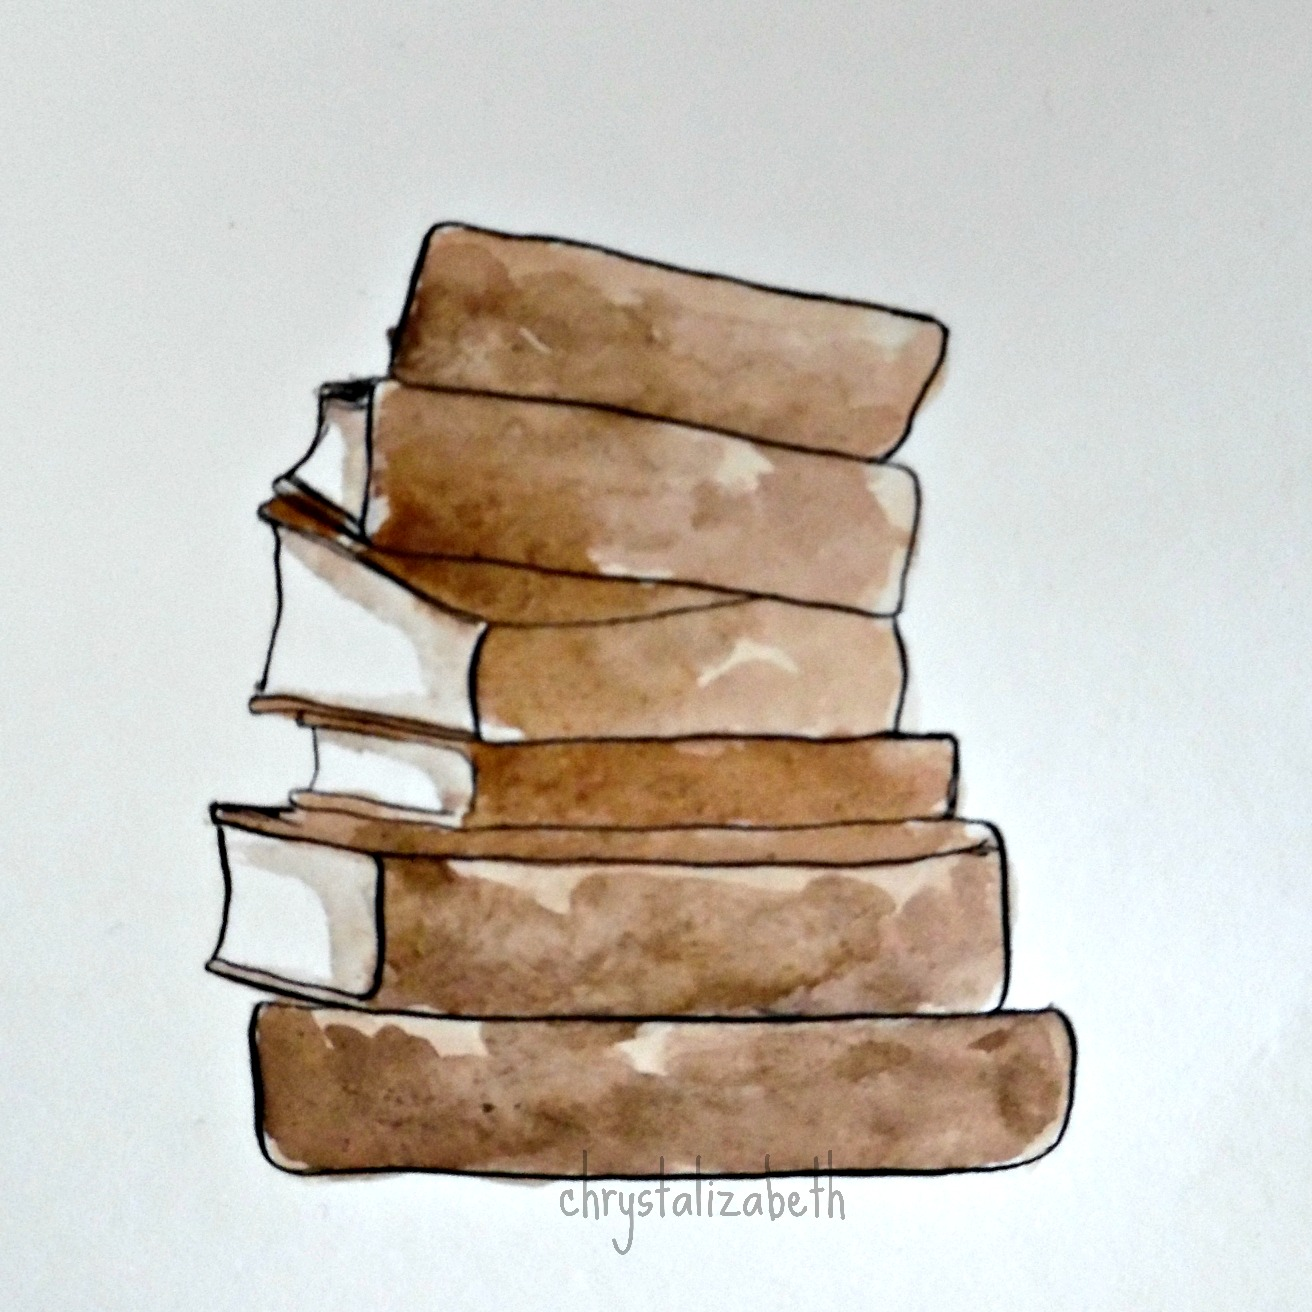 Watercolor: Stack of Books [From Start To Finish] – chrystalizabeth